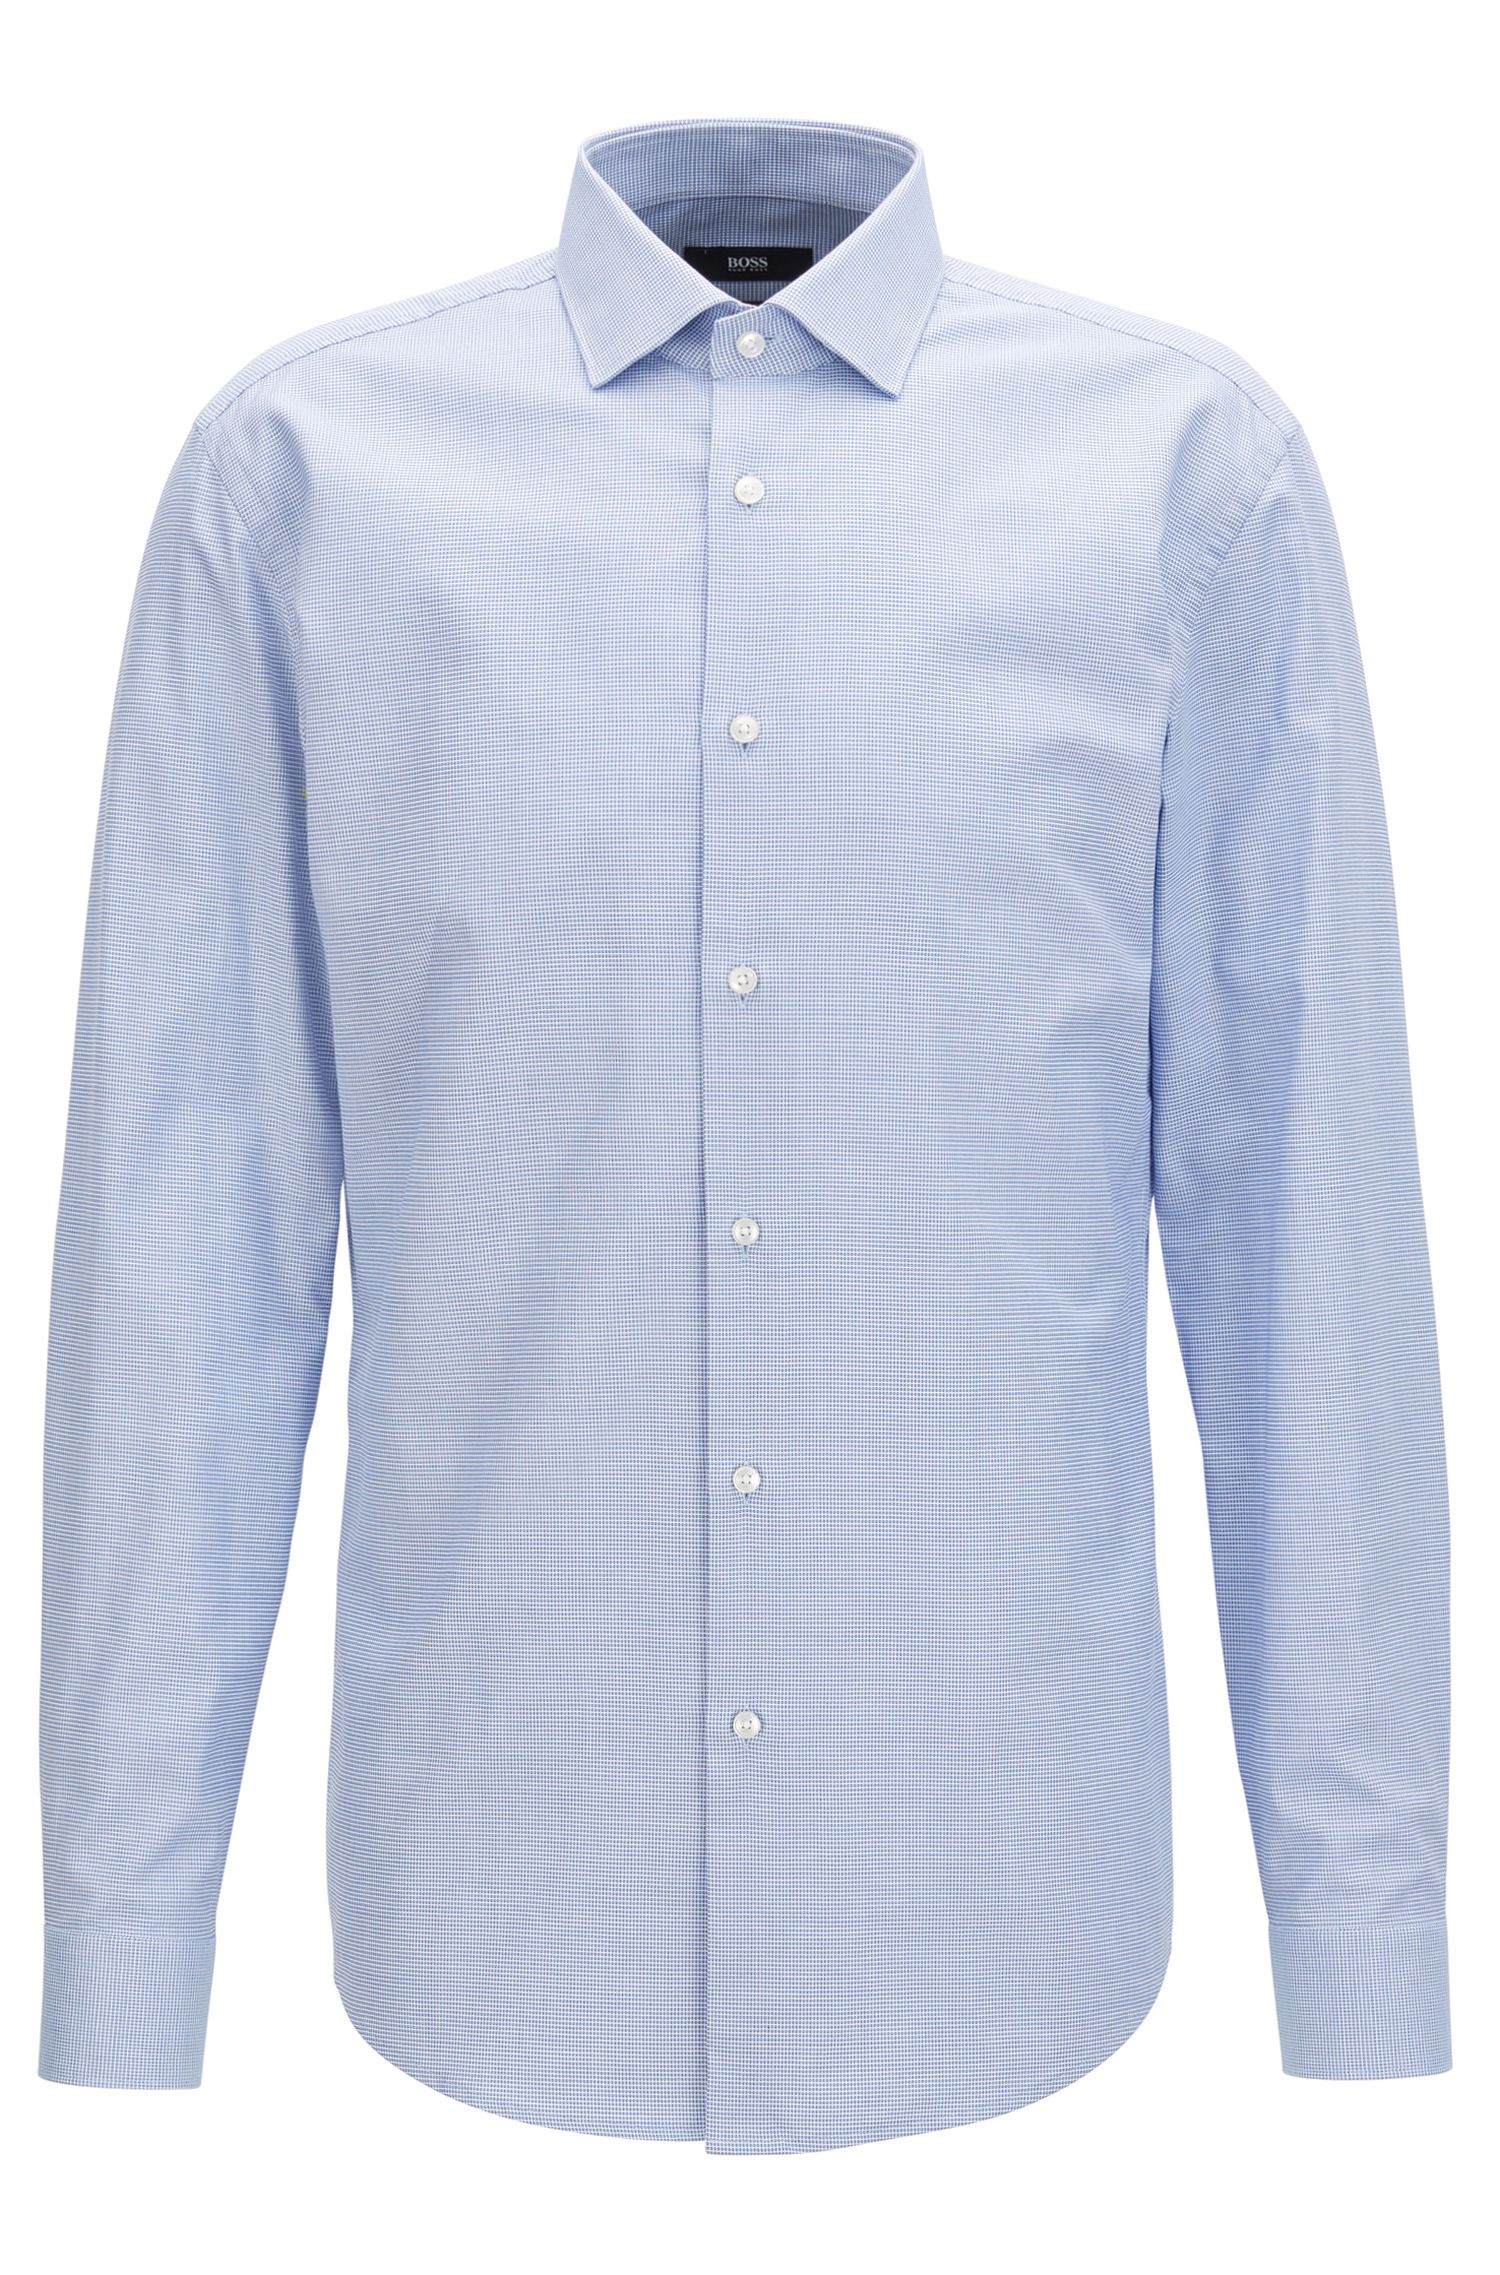 Camicia slim fit in cotone con microlavorazione all-over